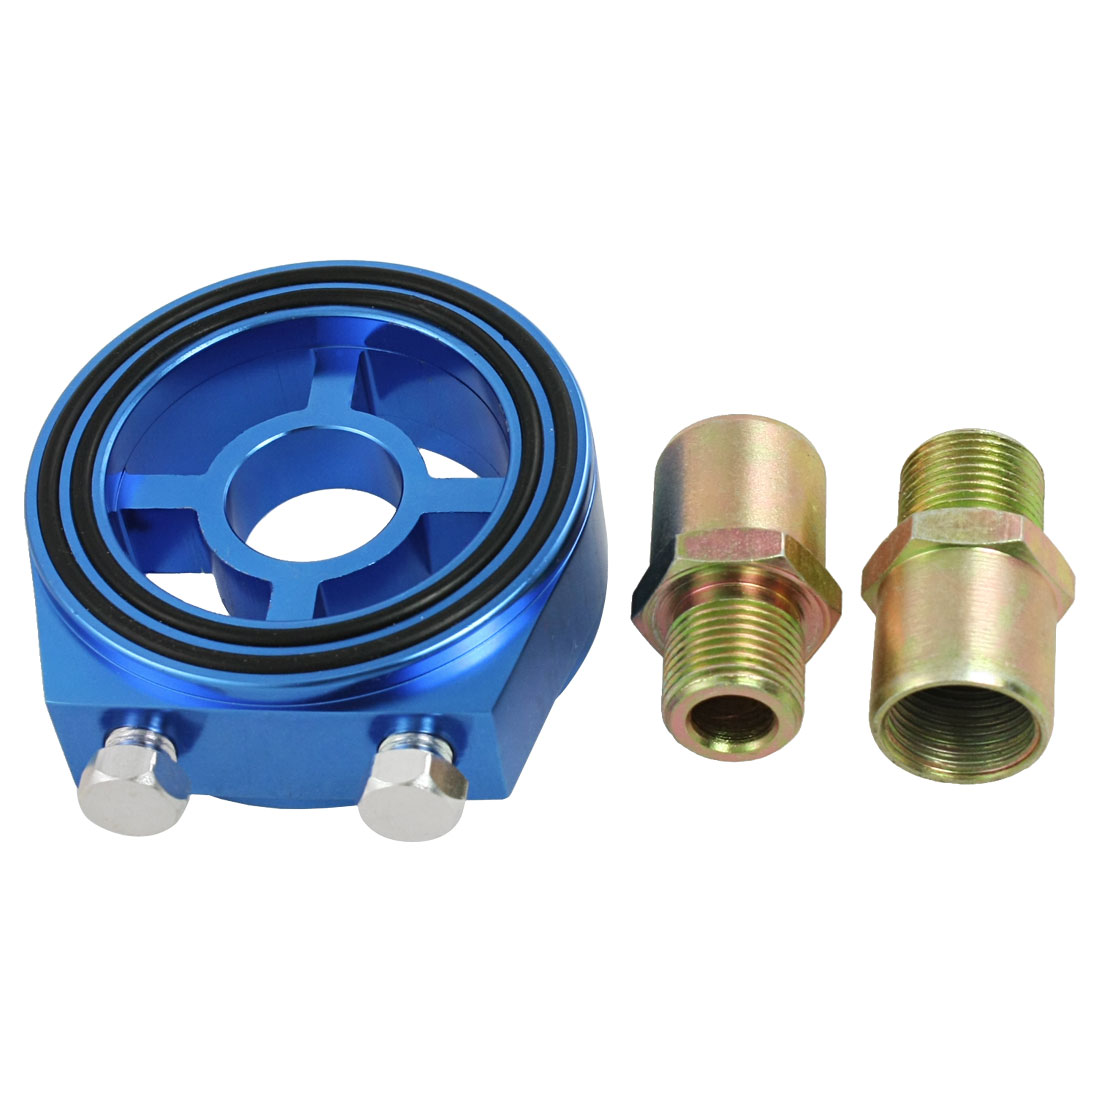 Universal Car Auto Blue Aluminum Oil Filter Sandwich Adapter Kit